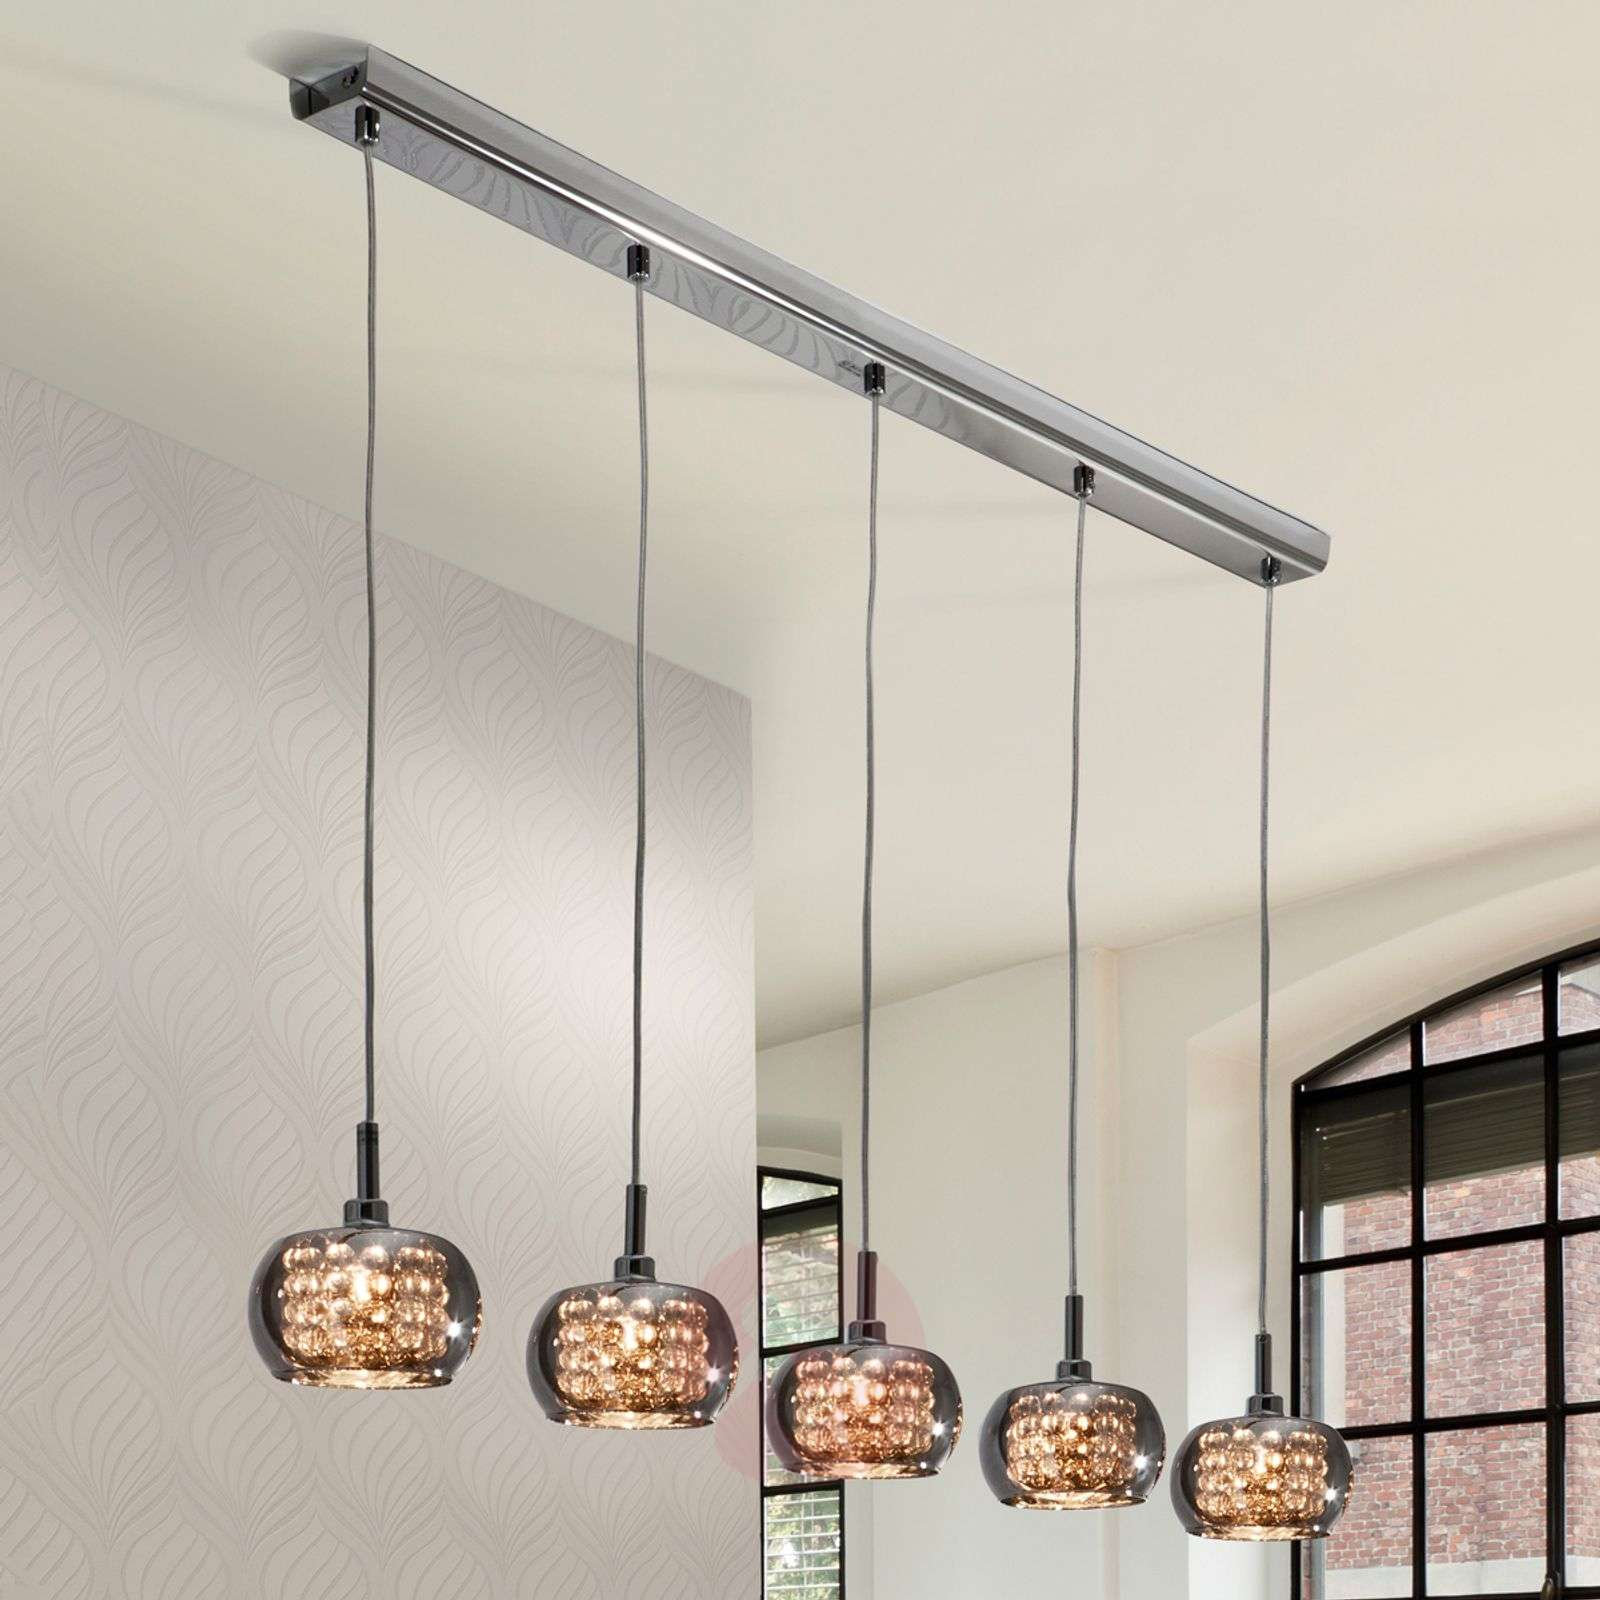 5-bulb glass hanging light Arian-8582269-01